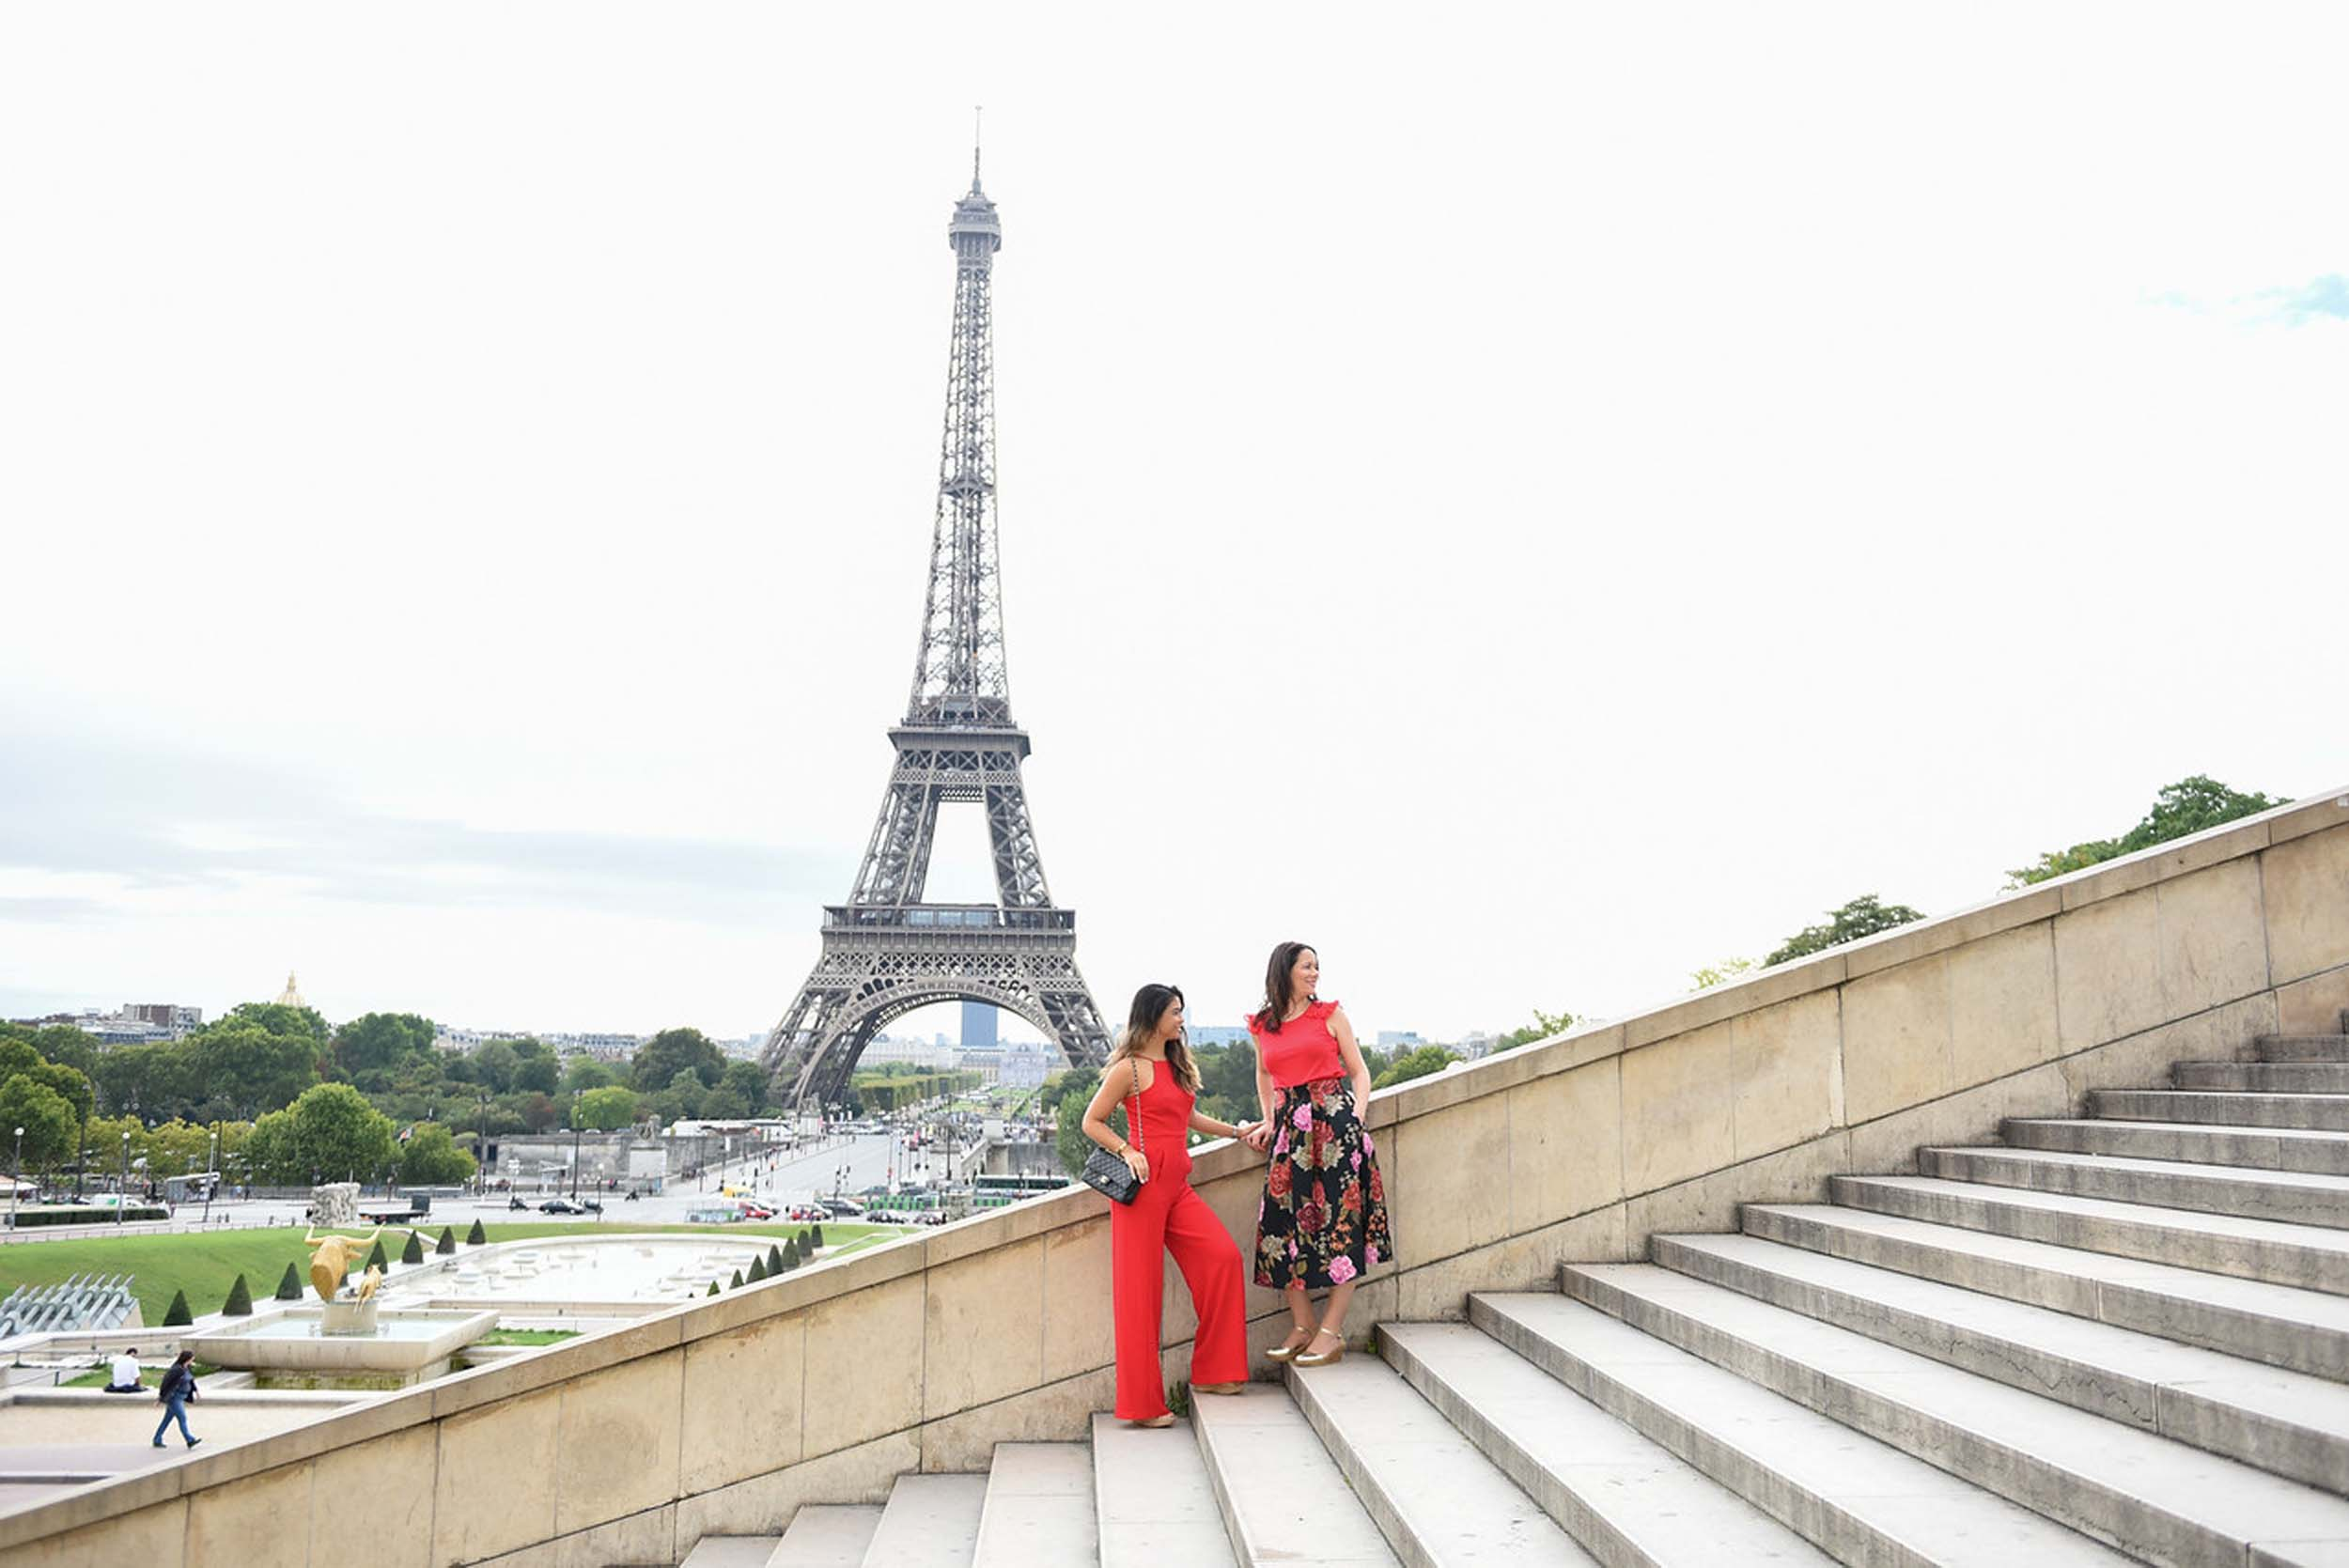 Two women standing on Trocadero steps together with the Eiffel Tower in the background in Paris, France